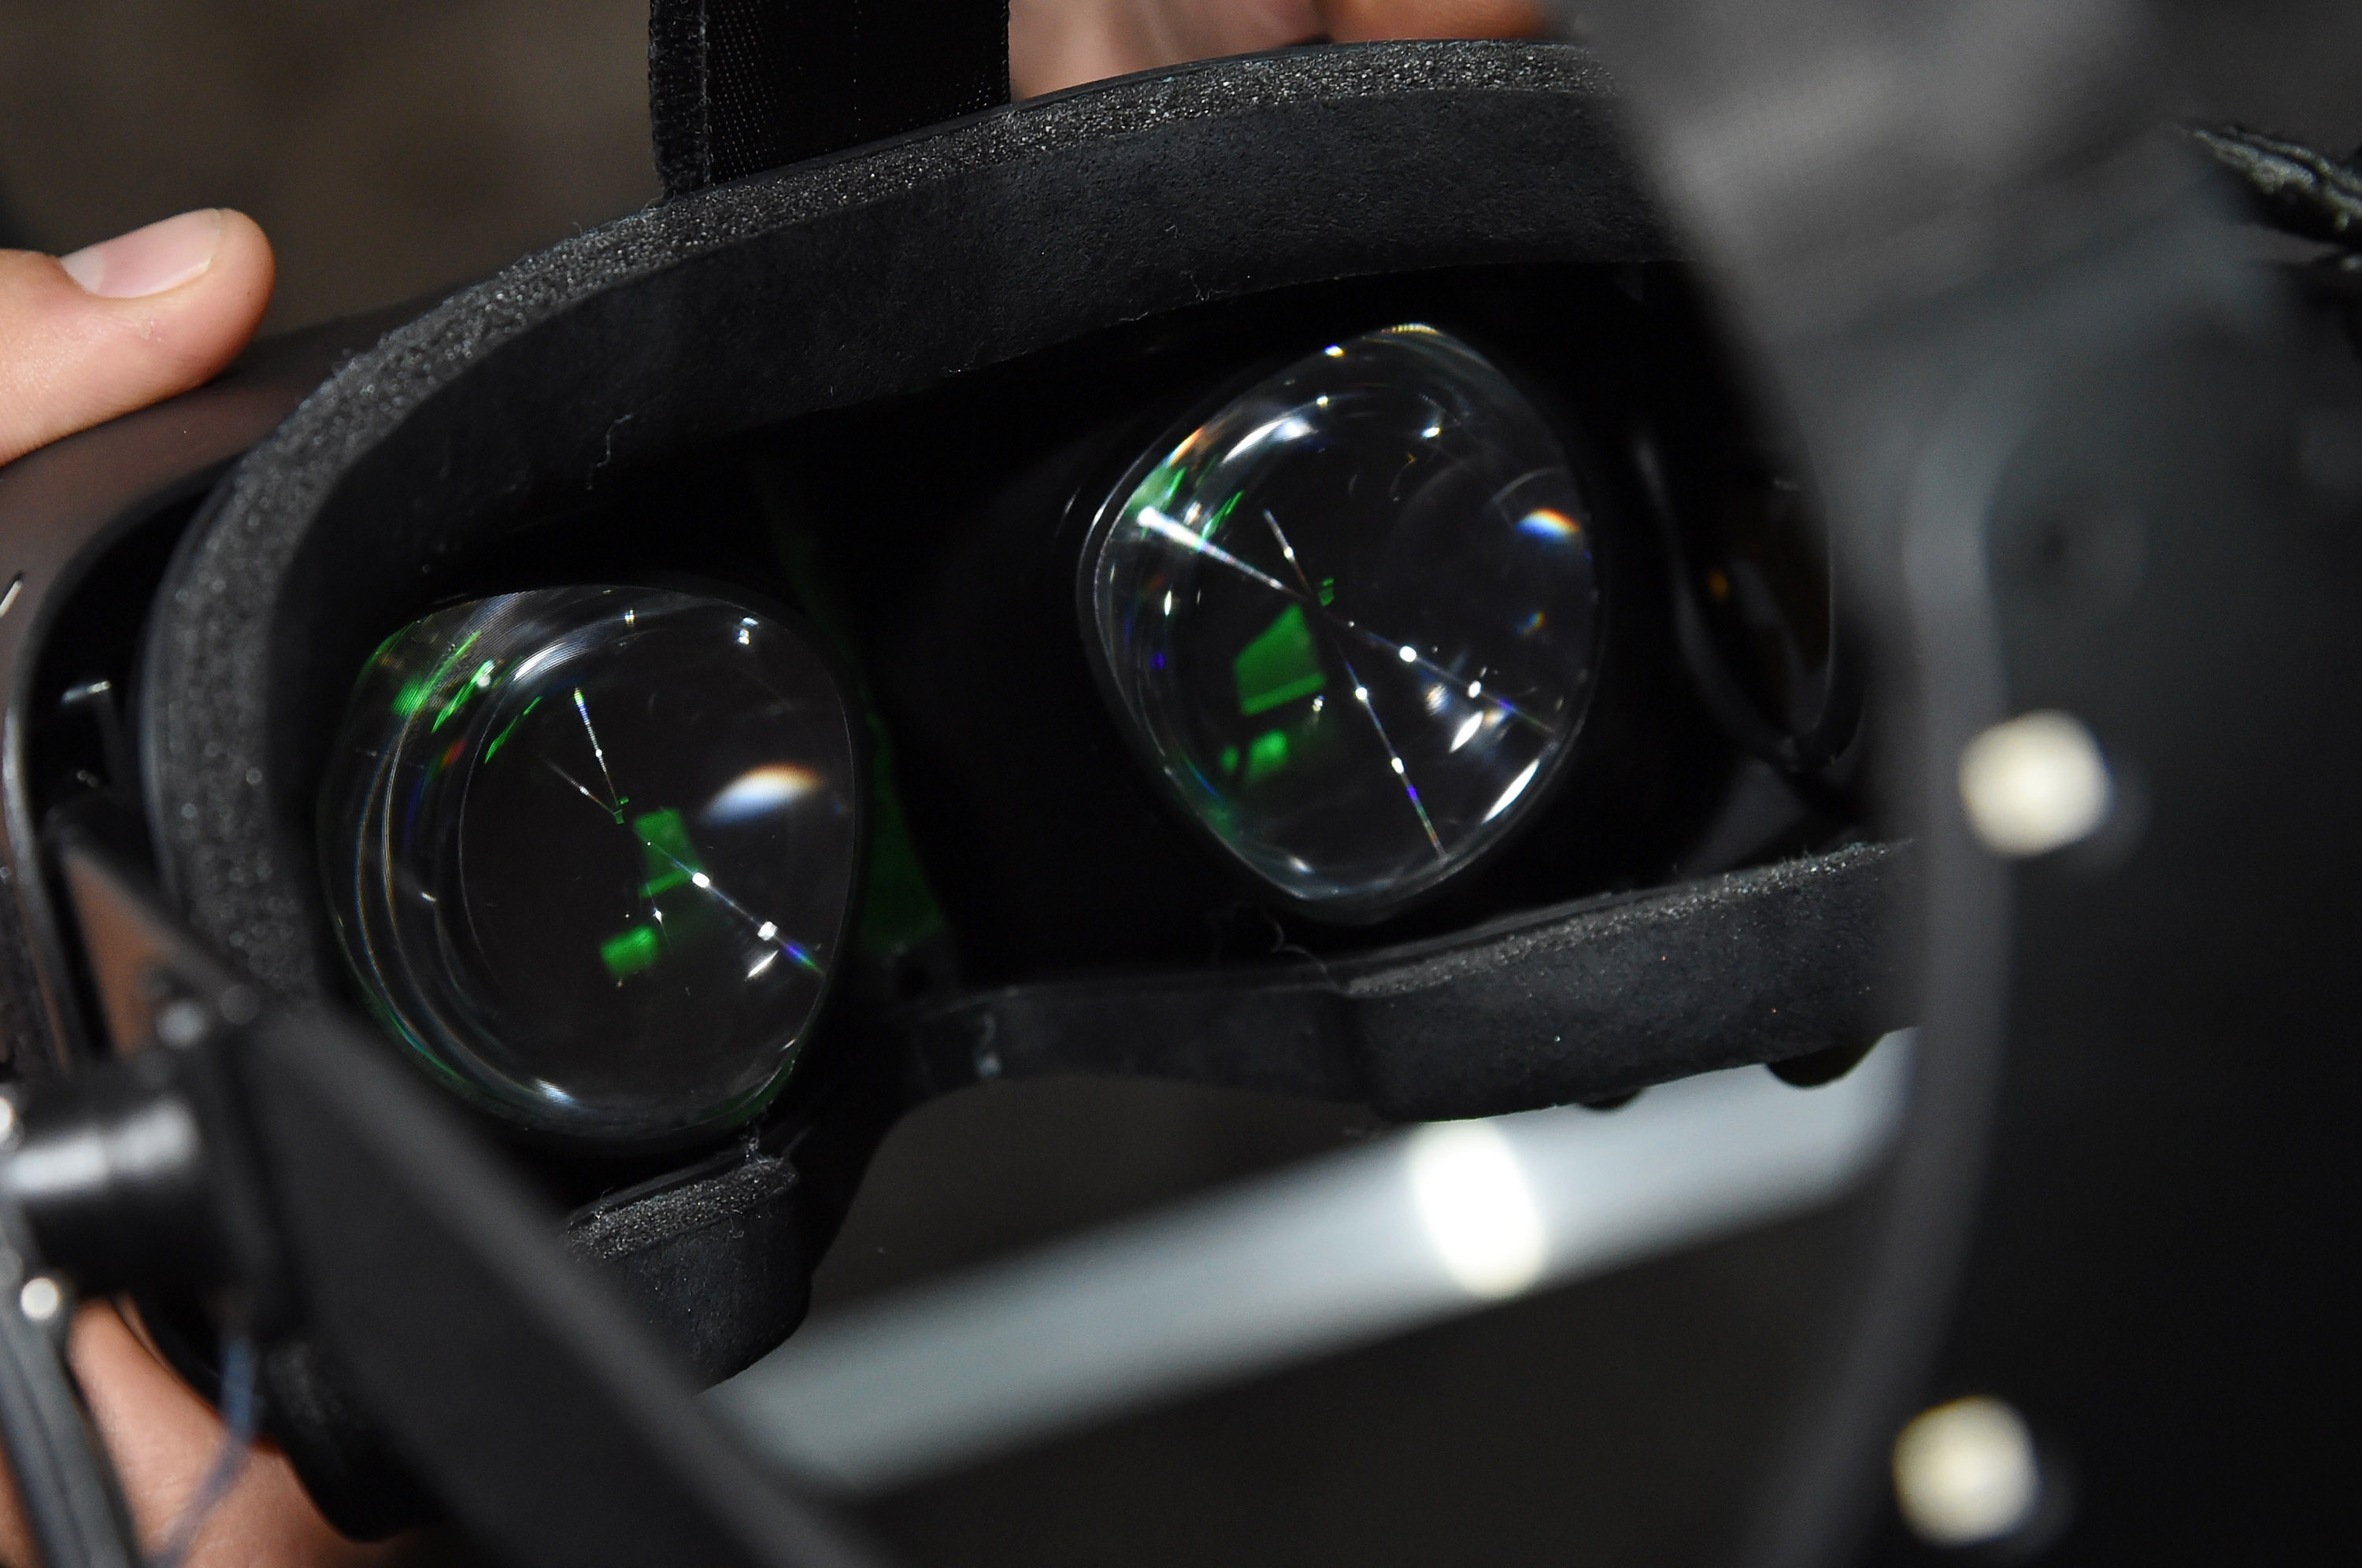 The Oculus VR Crescent Bay Headset prototype is displayed at the 2015 International CES on January 8, 2015.